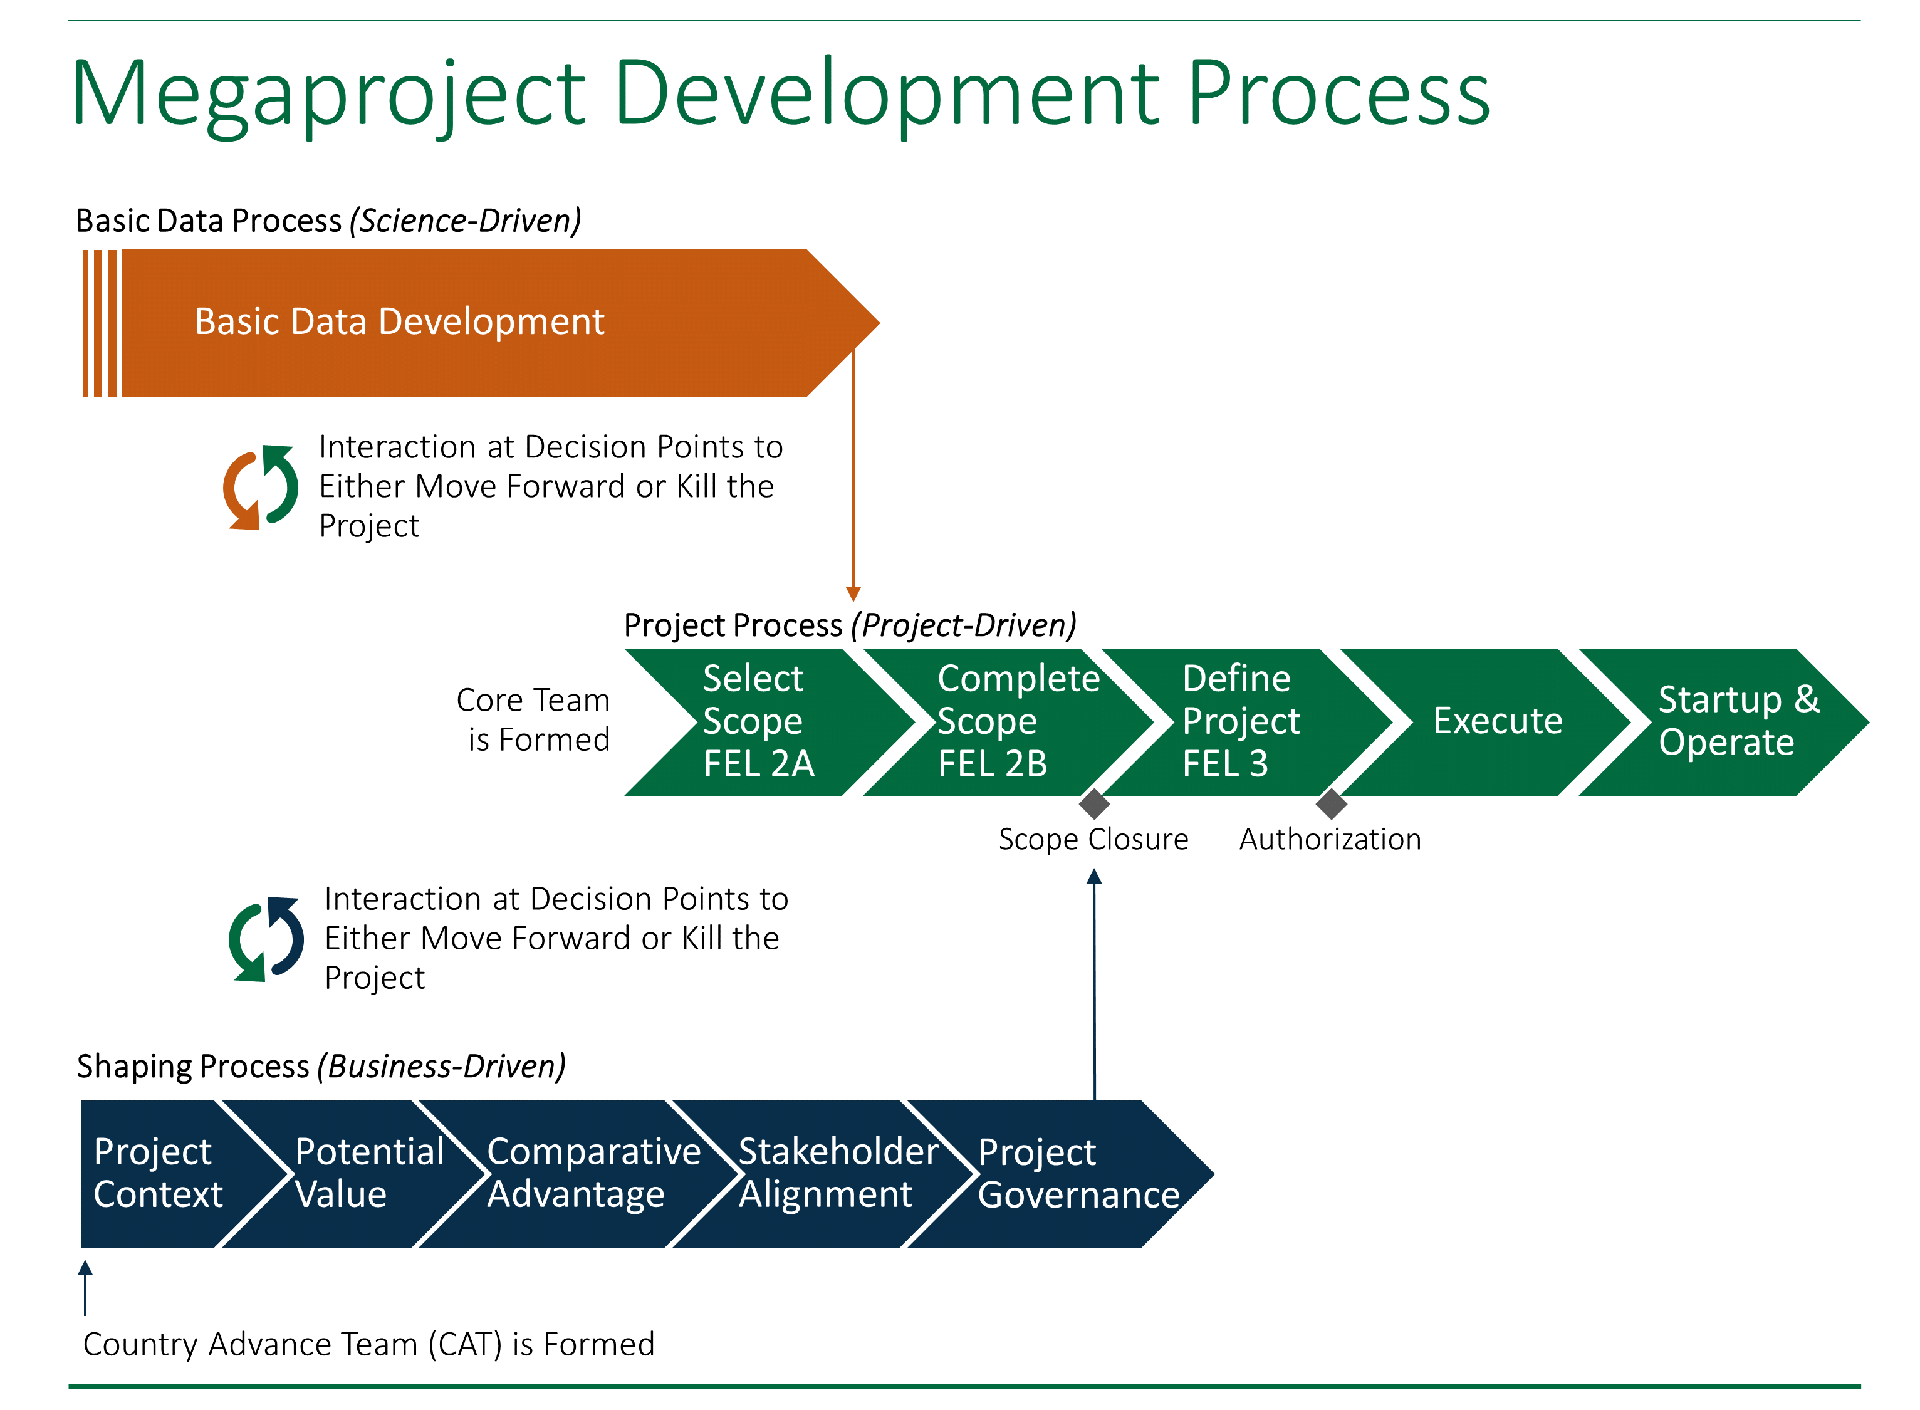 A chart illustrating the development process for megaprojects / major projects